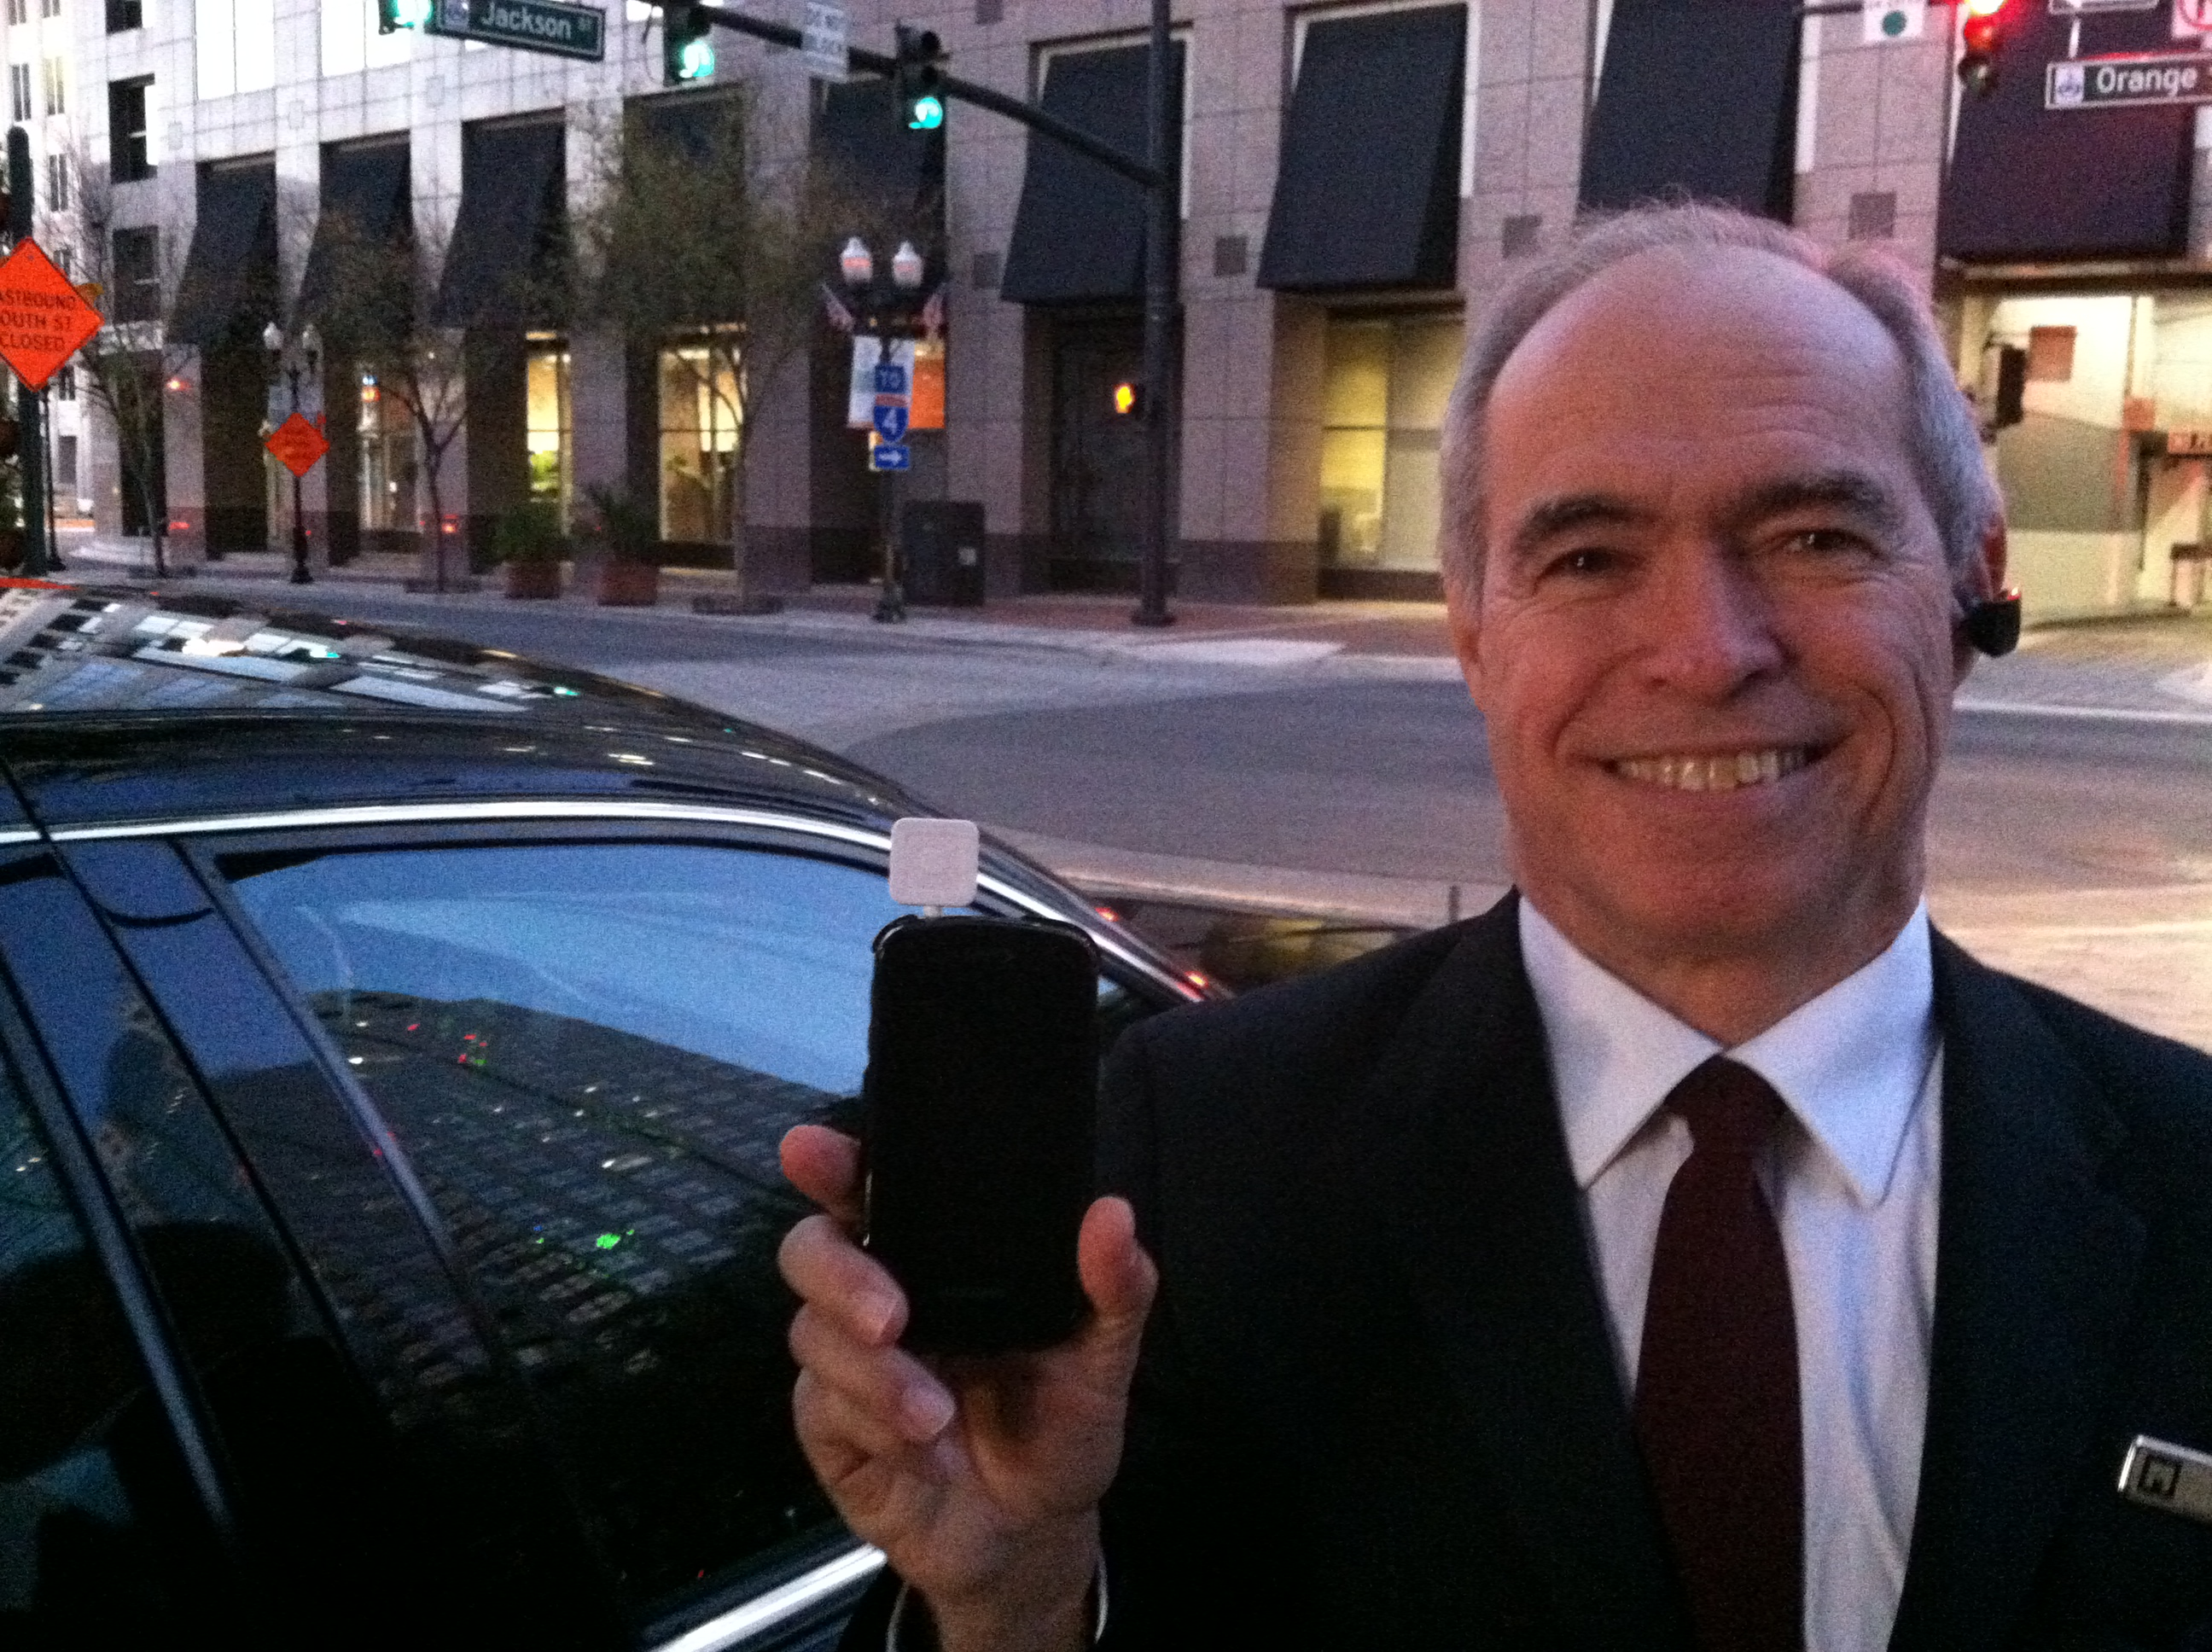 Orlando based chauffeur Rick Henry displays his mobile office